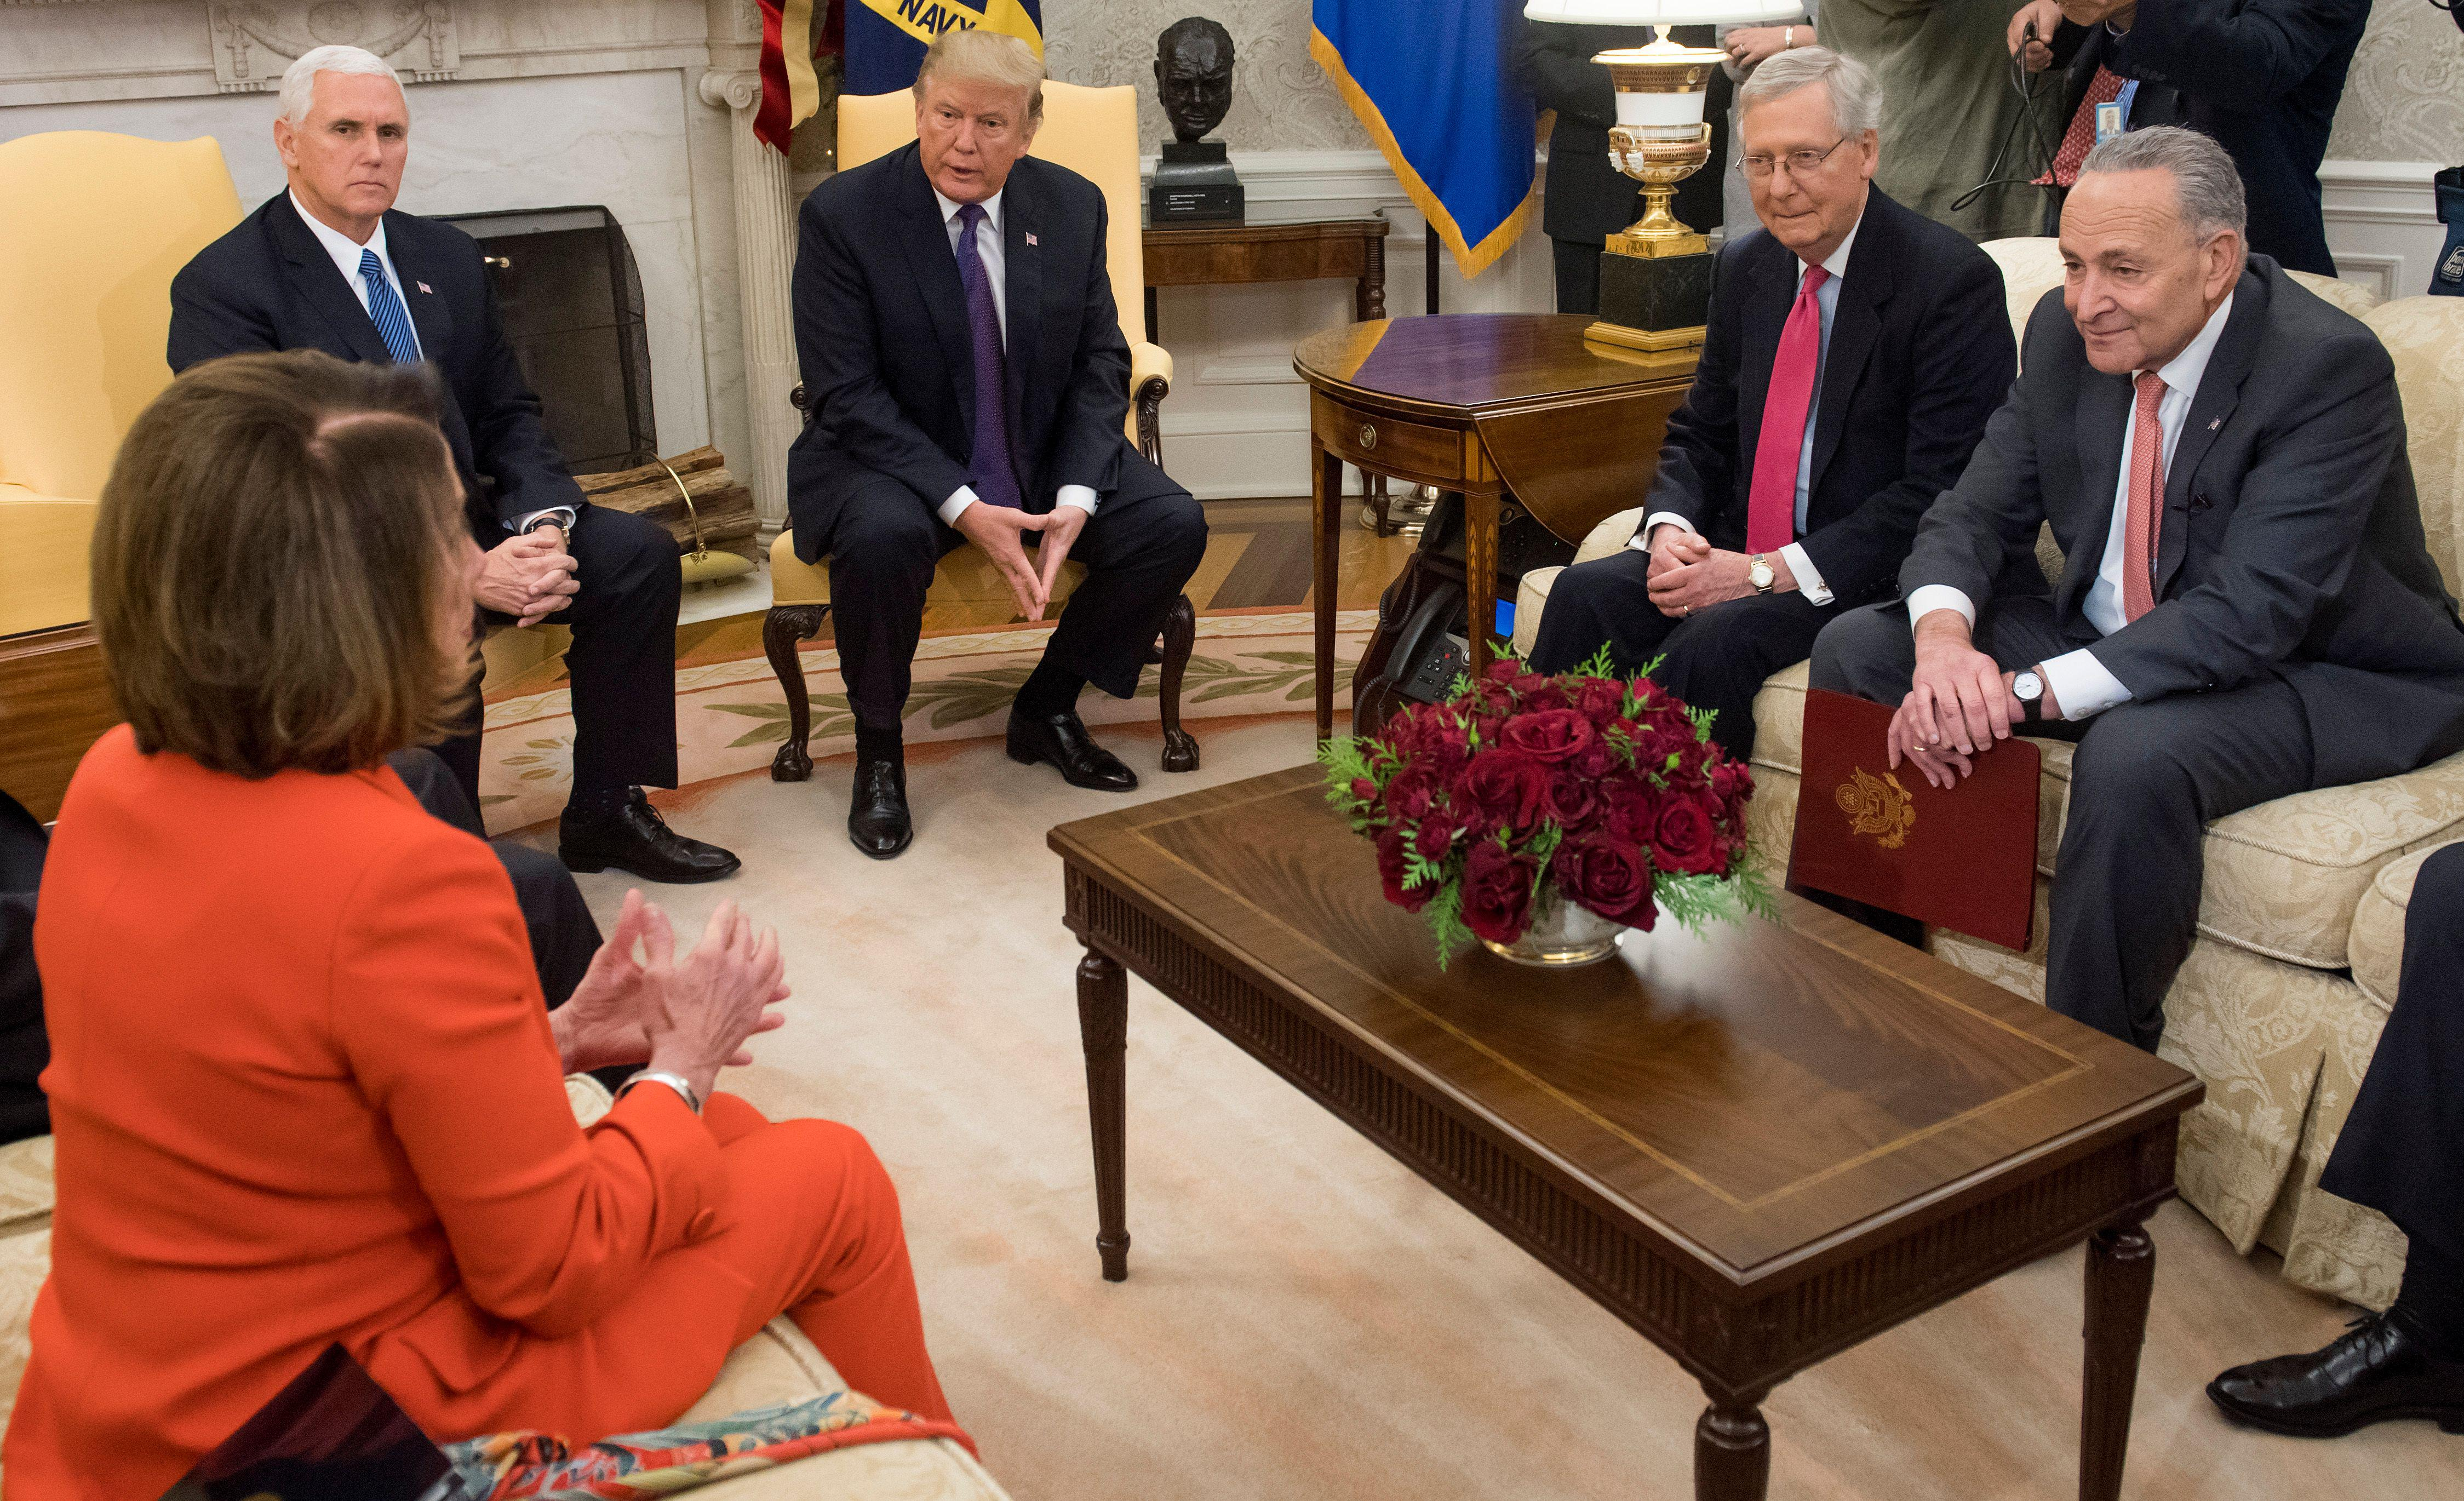 President Donald Trump meets with Congressional leadership including Senate Majority Leader Mitch McConnell (2nd R), Republican of Kentucky, Senate Minority Leader Chuck Schumer (R), Democrat of New York, and House Democratic Leader Nancy Pelosi (L), Democrat of California, in the Oval Office at the White House in Washington, DC, December 7, 2017. / AFP PHOTO / SAUL LOEB        (Photo credit should read SAUL LOEB/AFP/Getty Images)